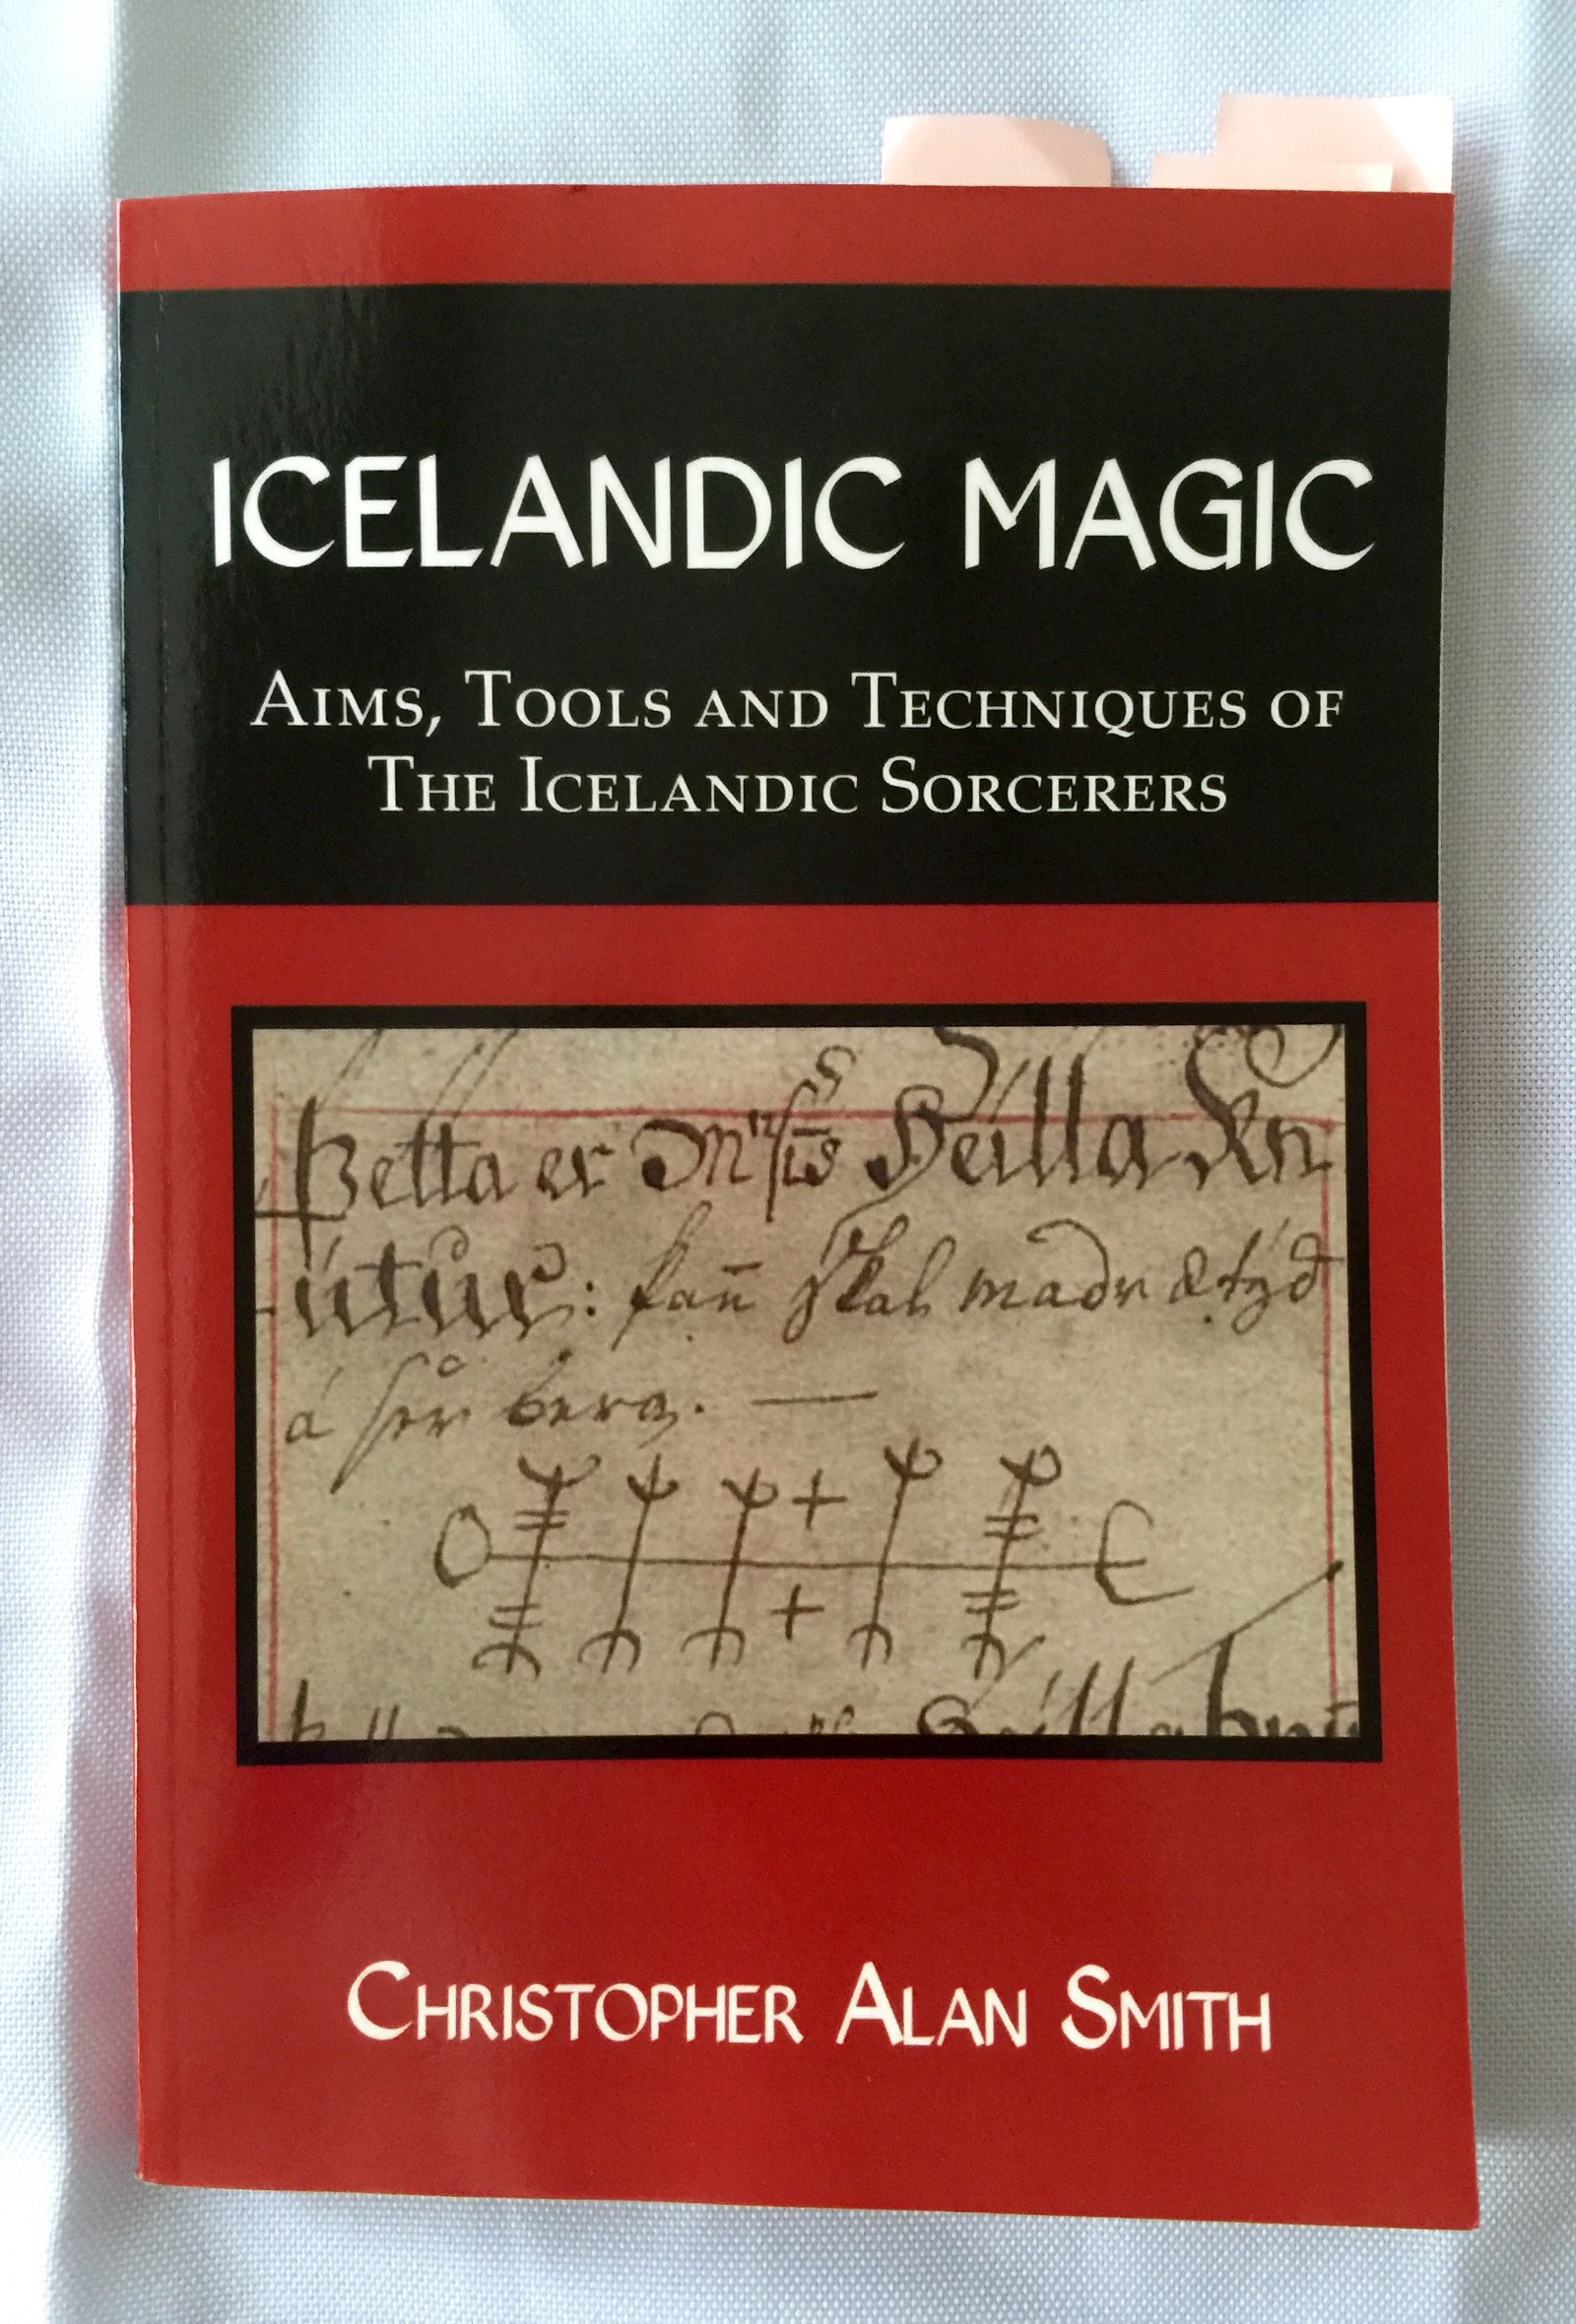 Icelandic Magic Aims Tools And Techniques Of The Icelandic